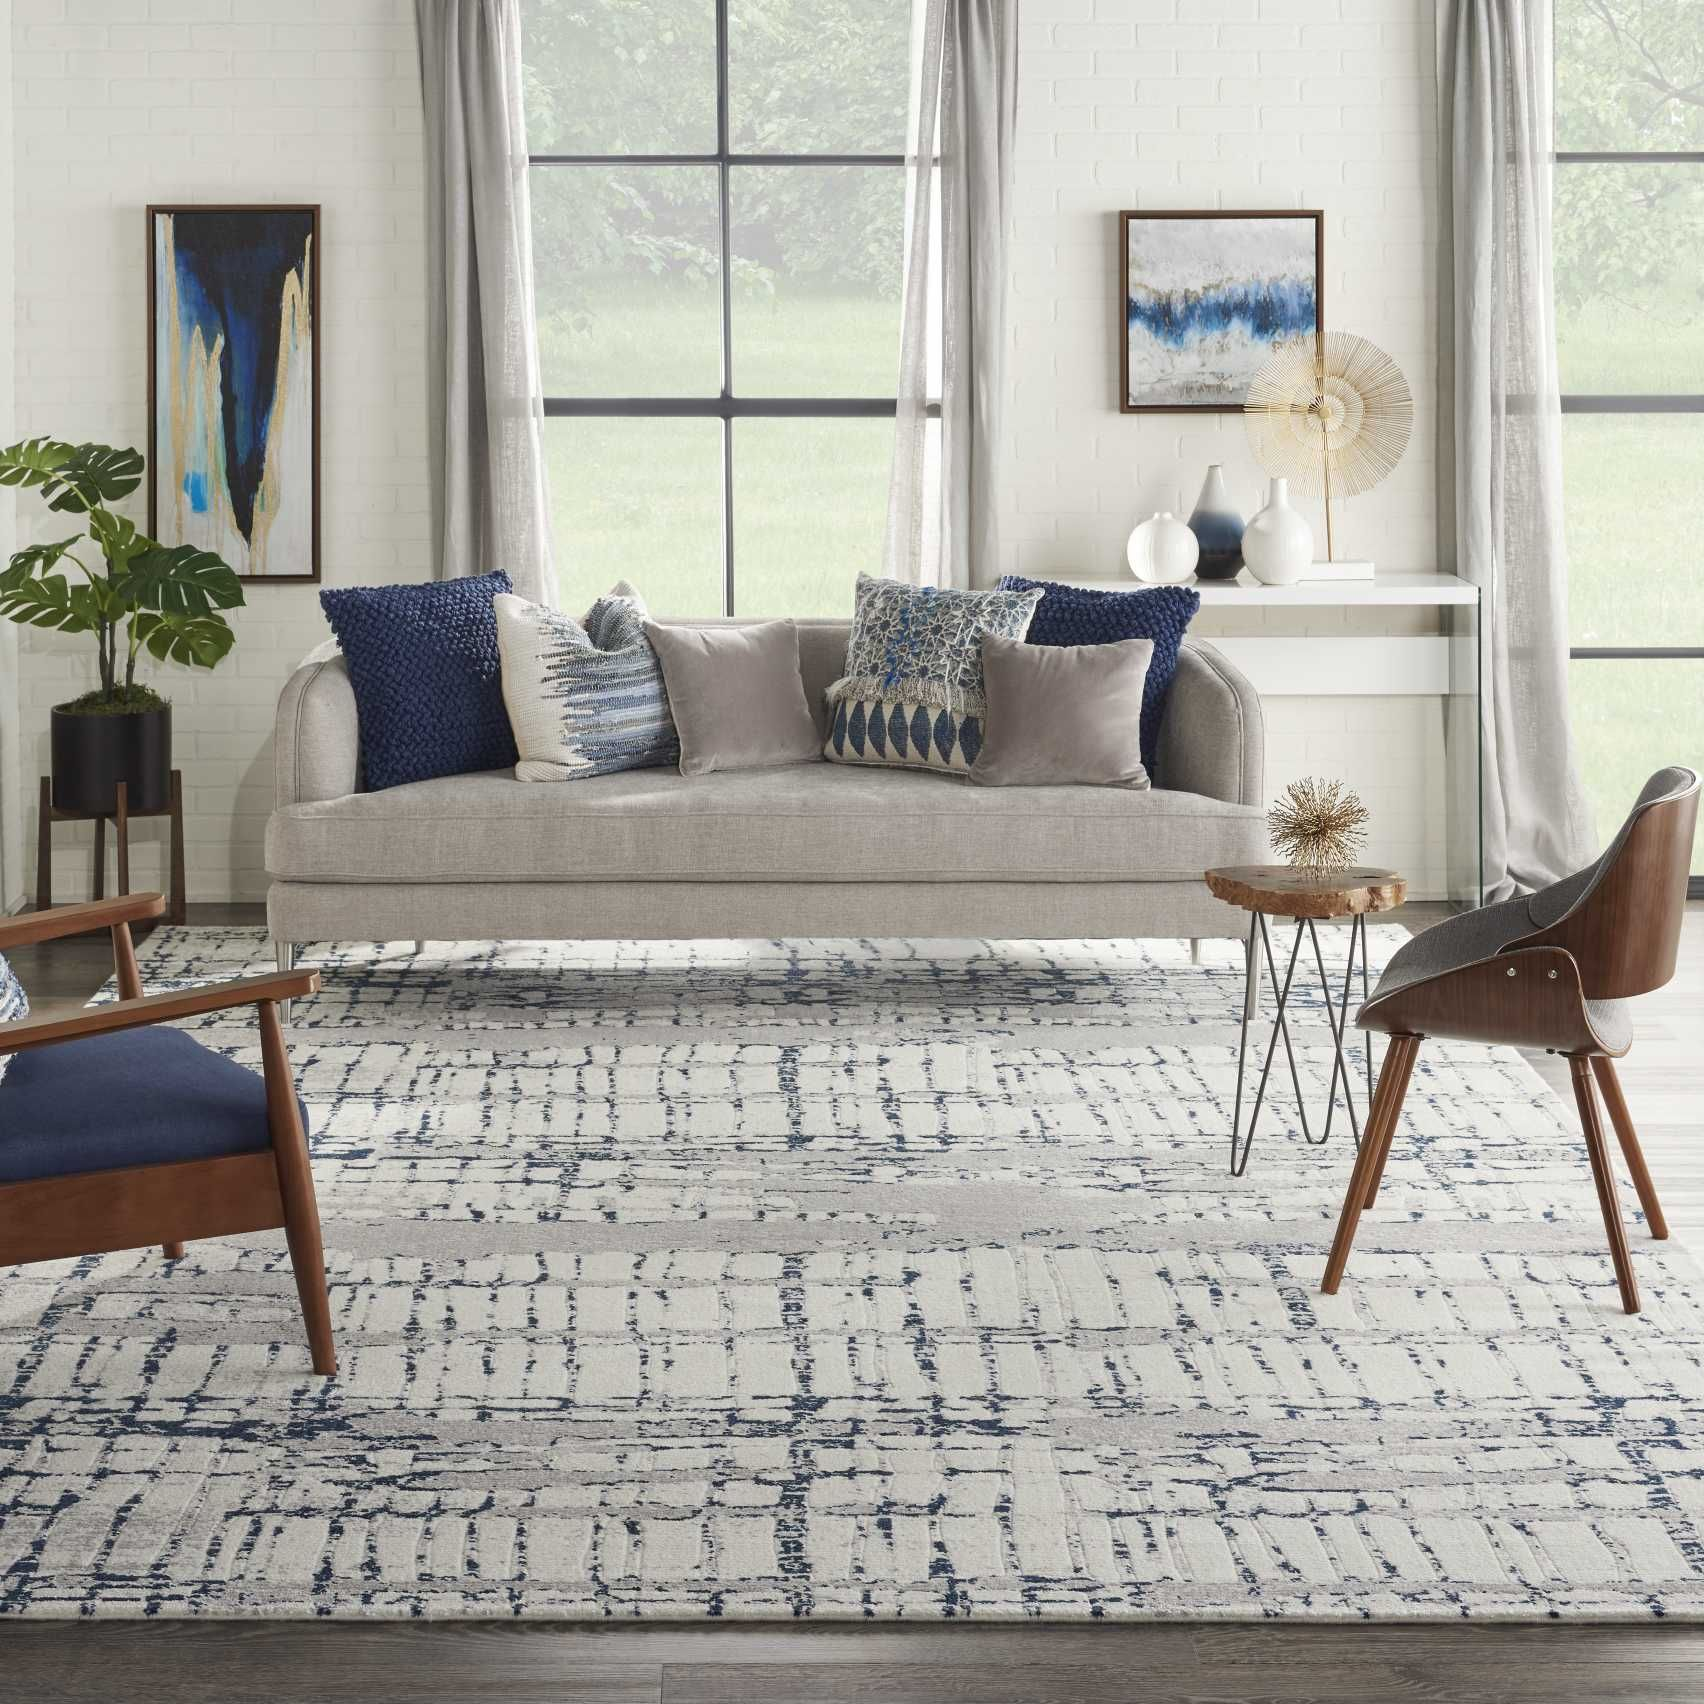 Twilight Area Rug Twi10 Ivory Navy In 2020 Home Decor Decor Area Rugs